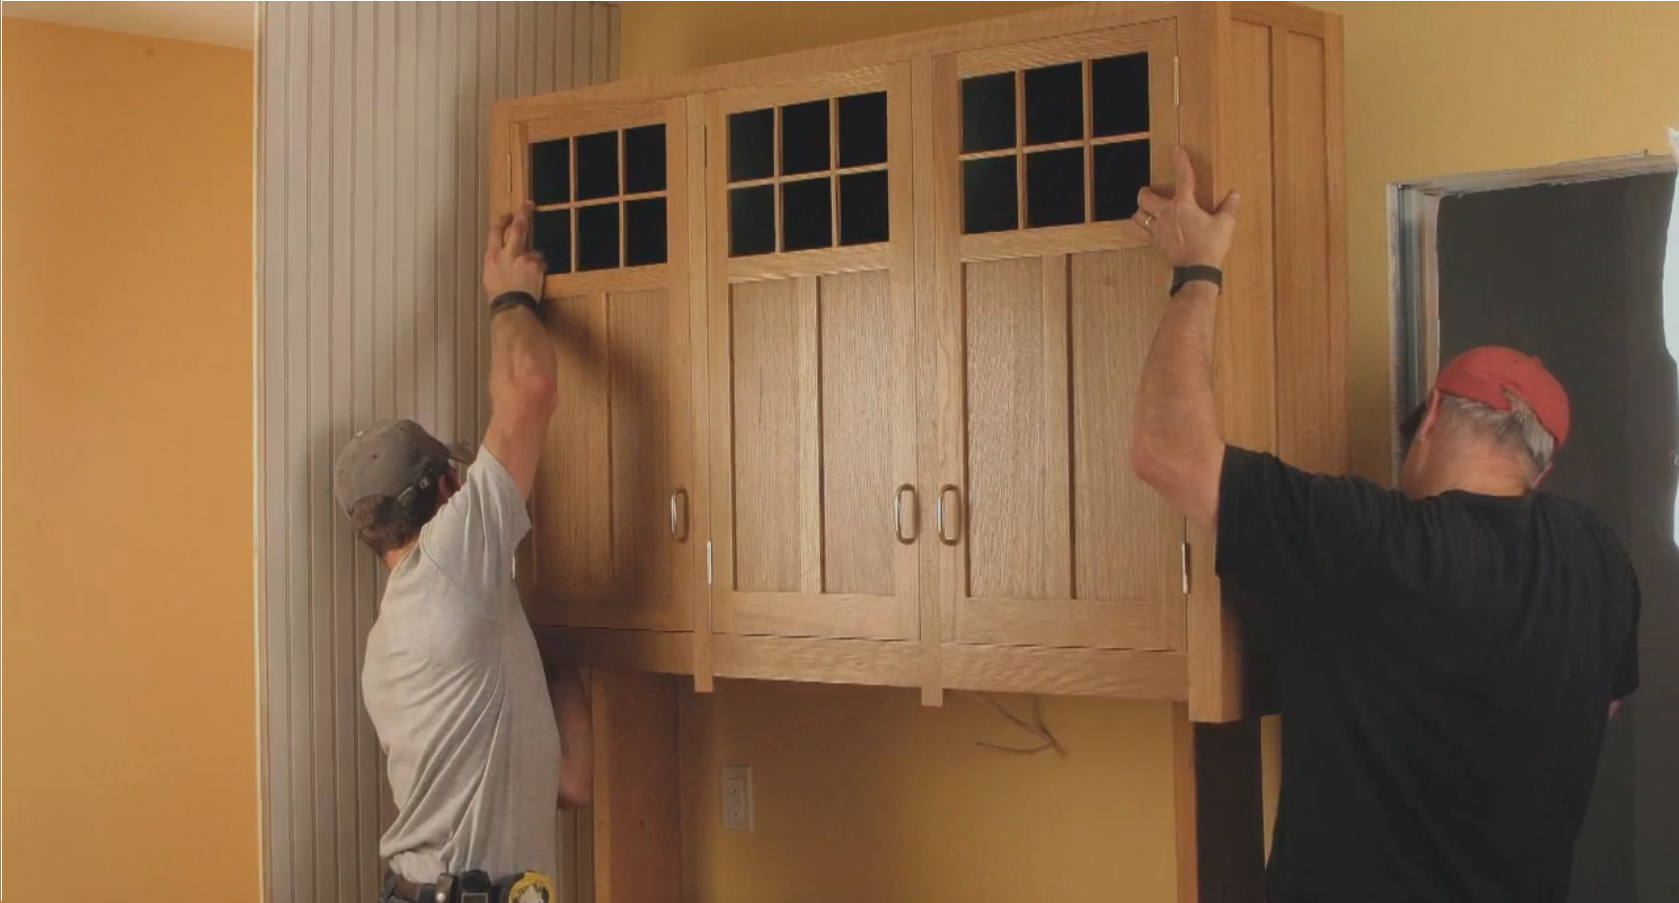 Master Carpenter Video How To Fit Inset Cabinet Doors - Fine Homebuilding : cabnit doors - pezcame.com